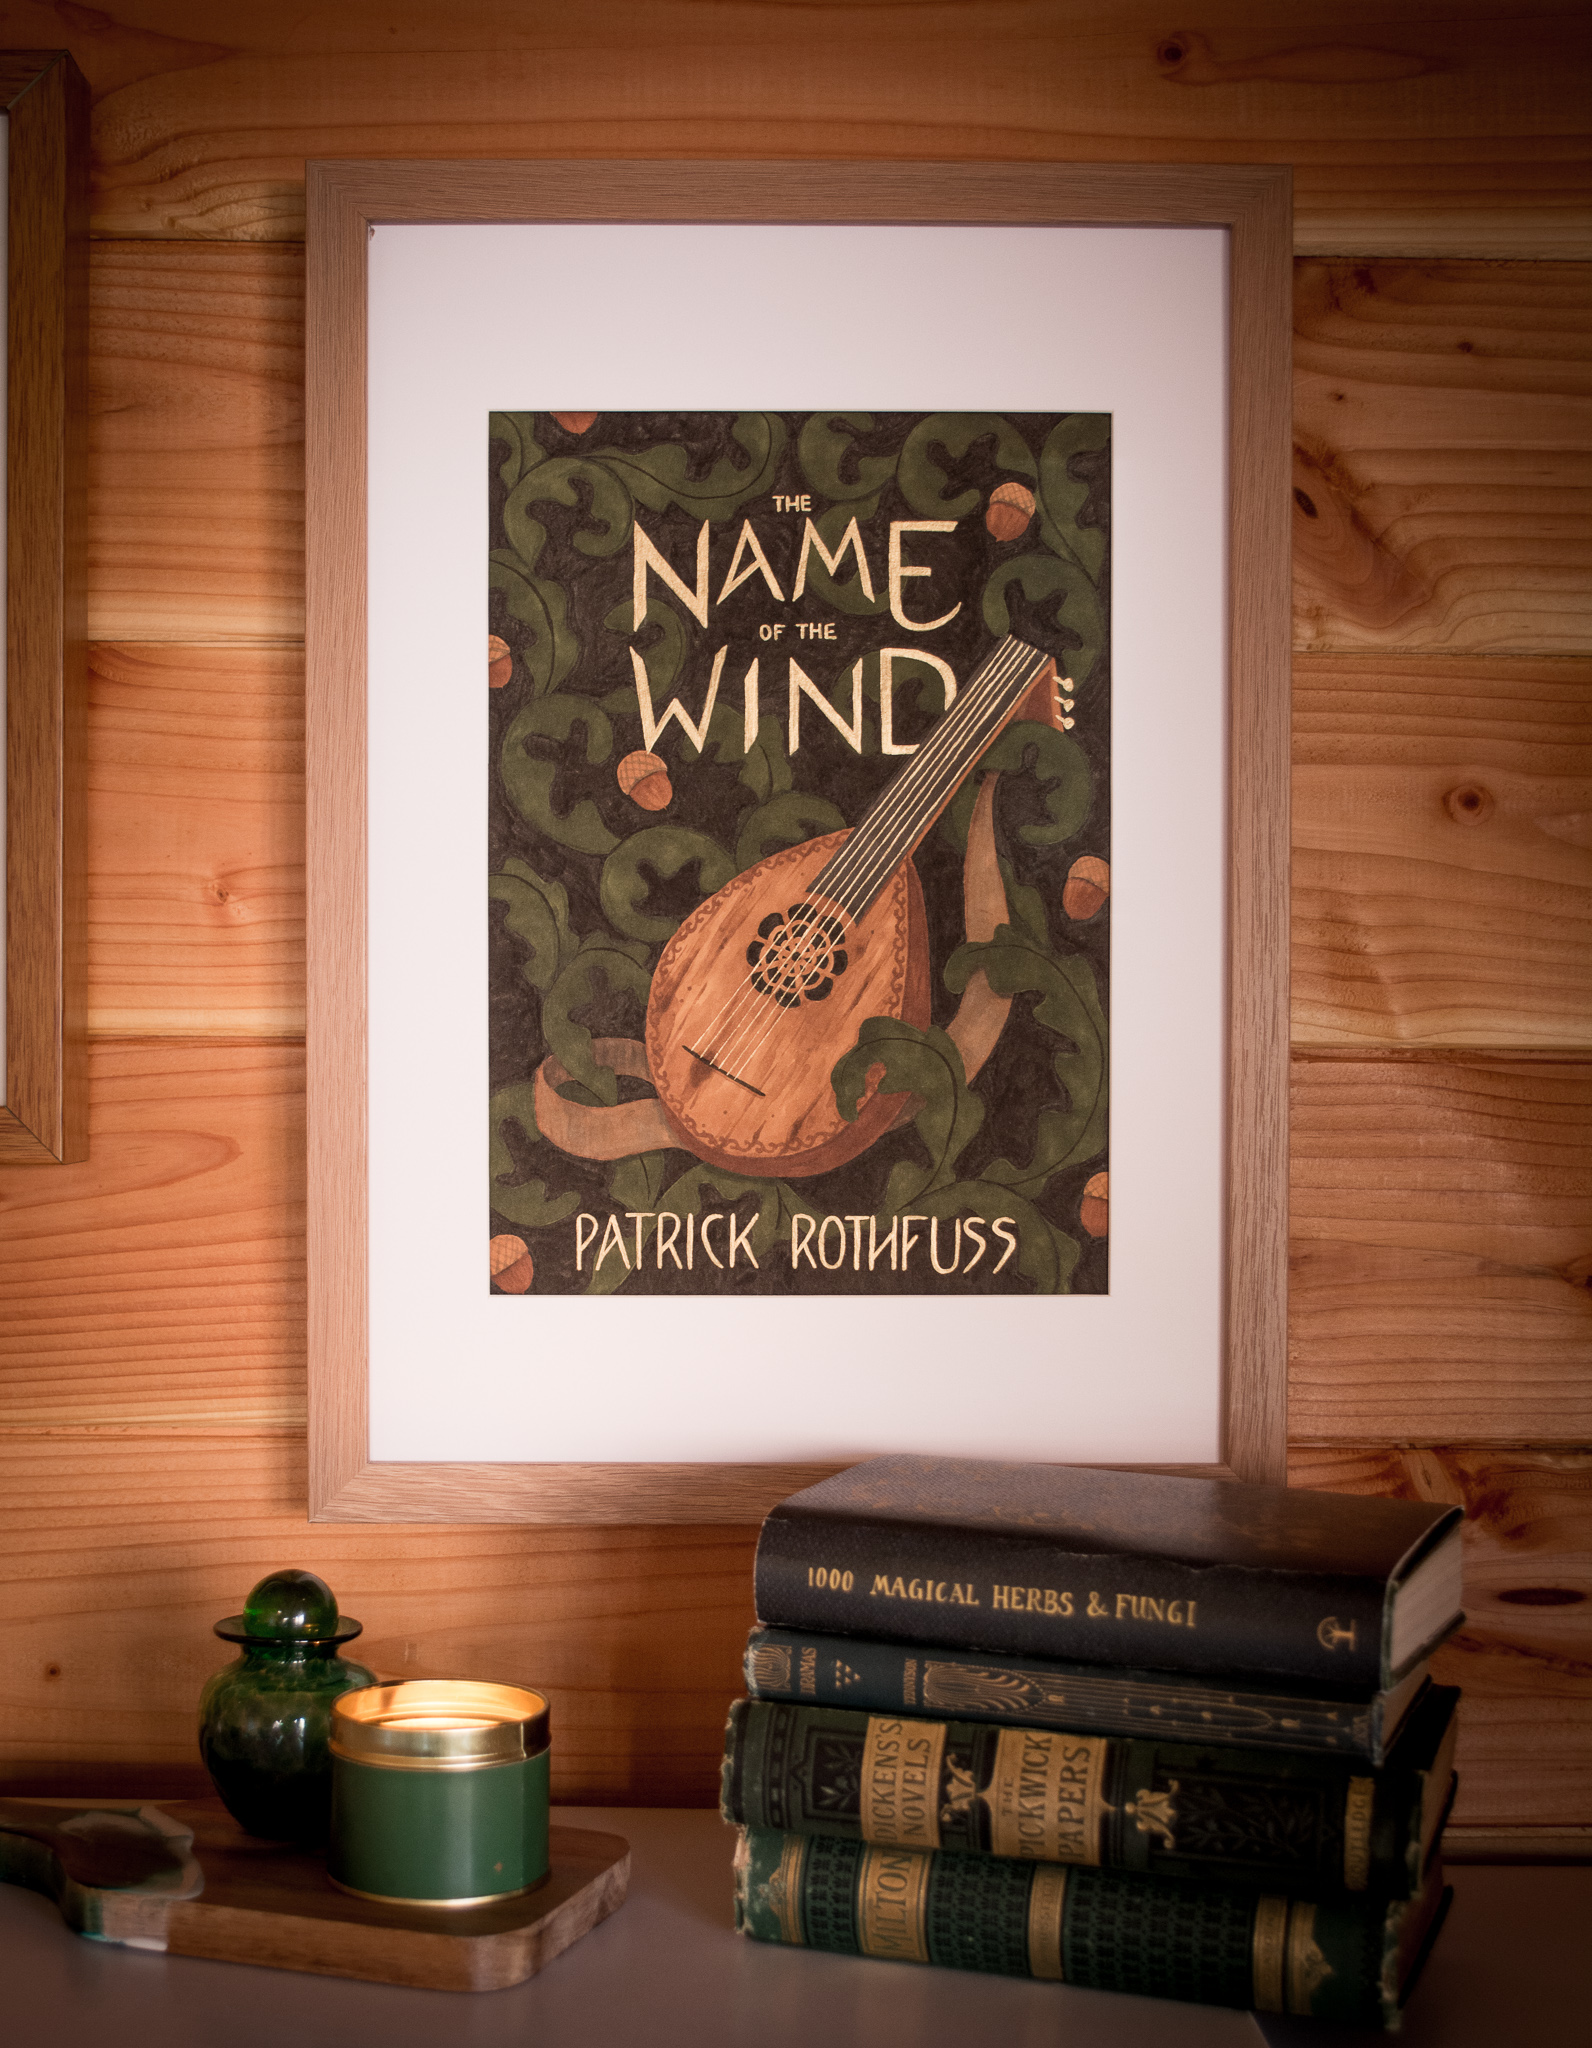 name_of_wind_patrick_rothfuss_book_cover_holly_dunn_design.jpg